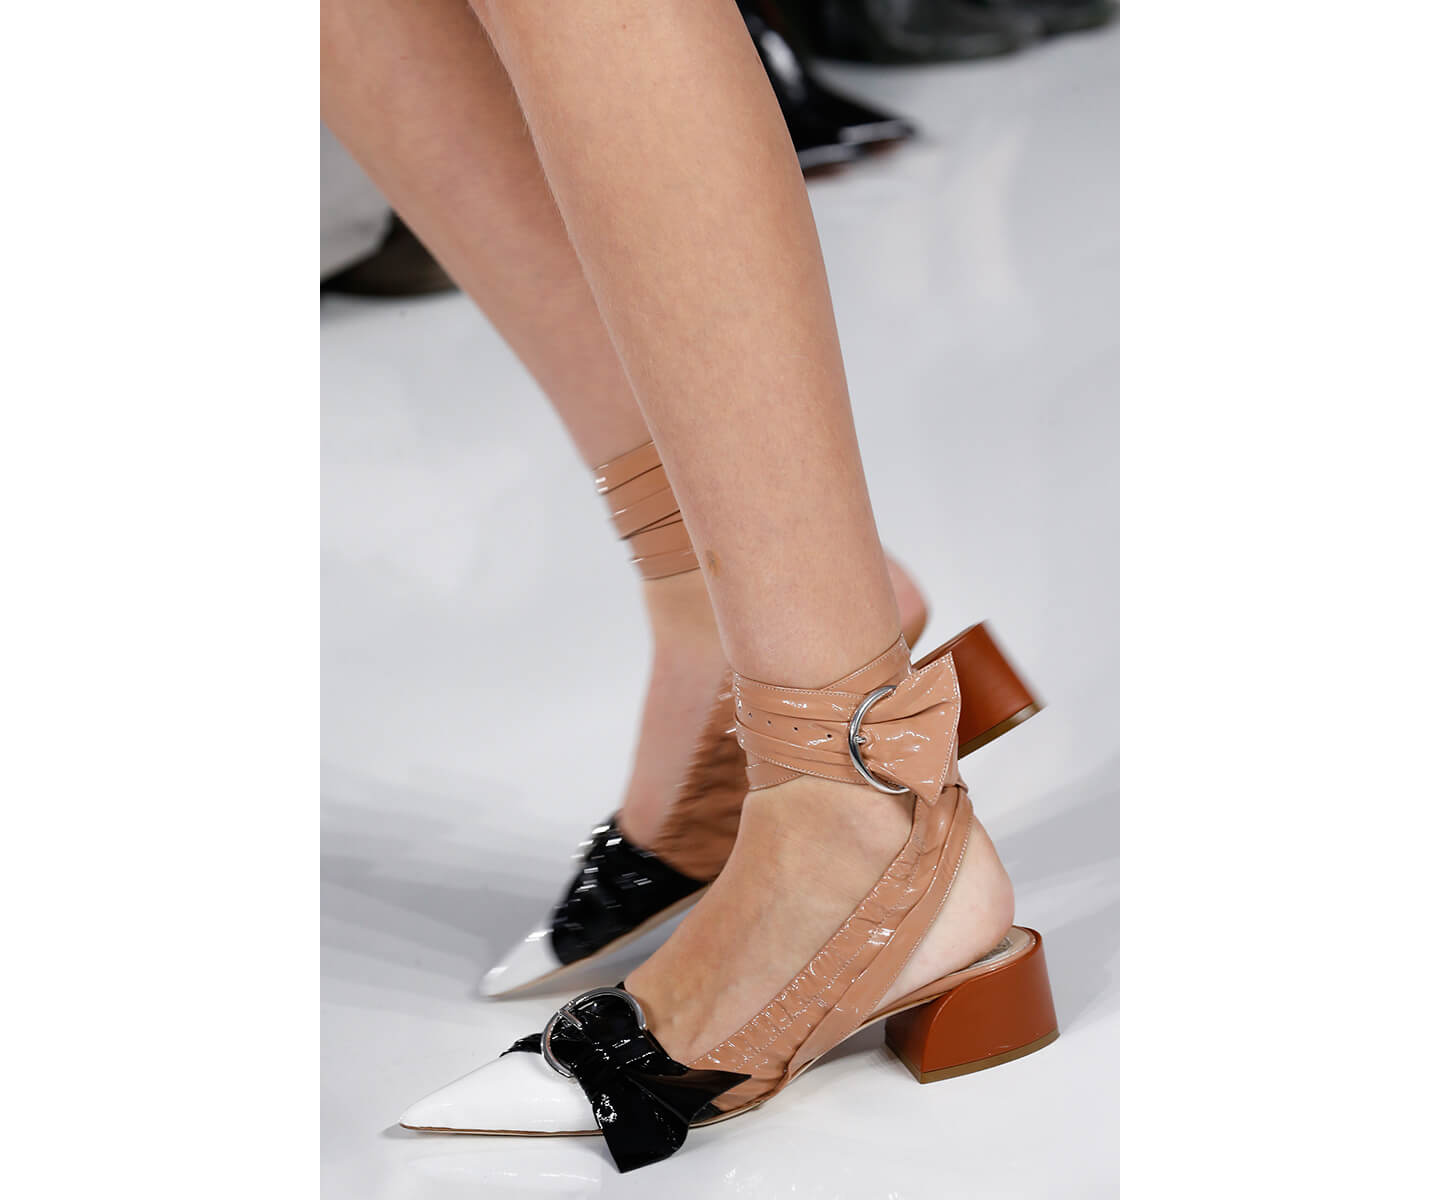 dior-ss16-shoes-1